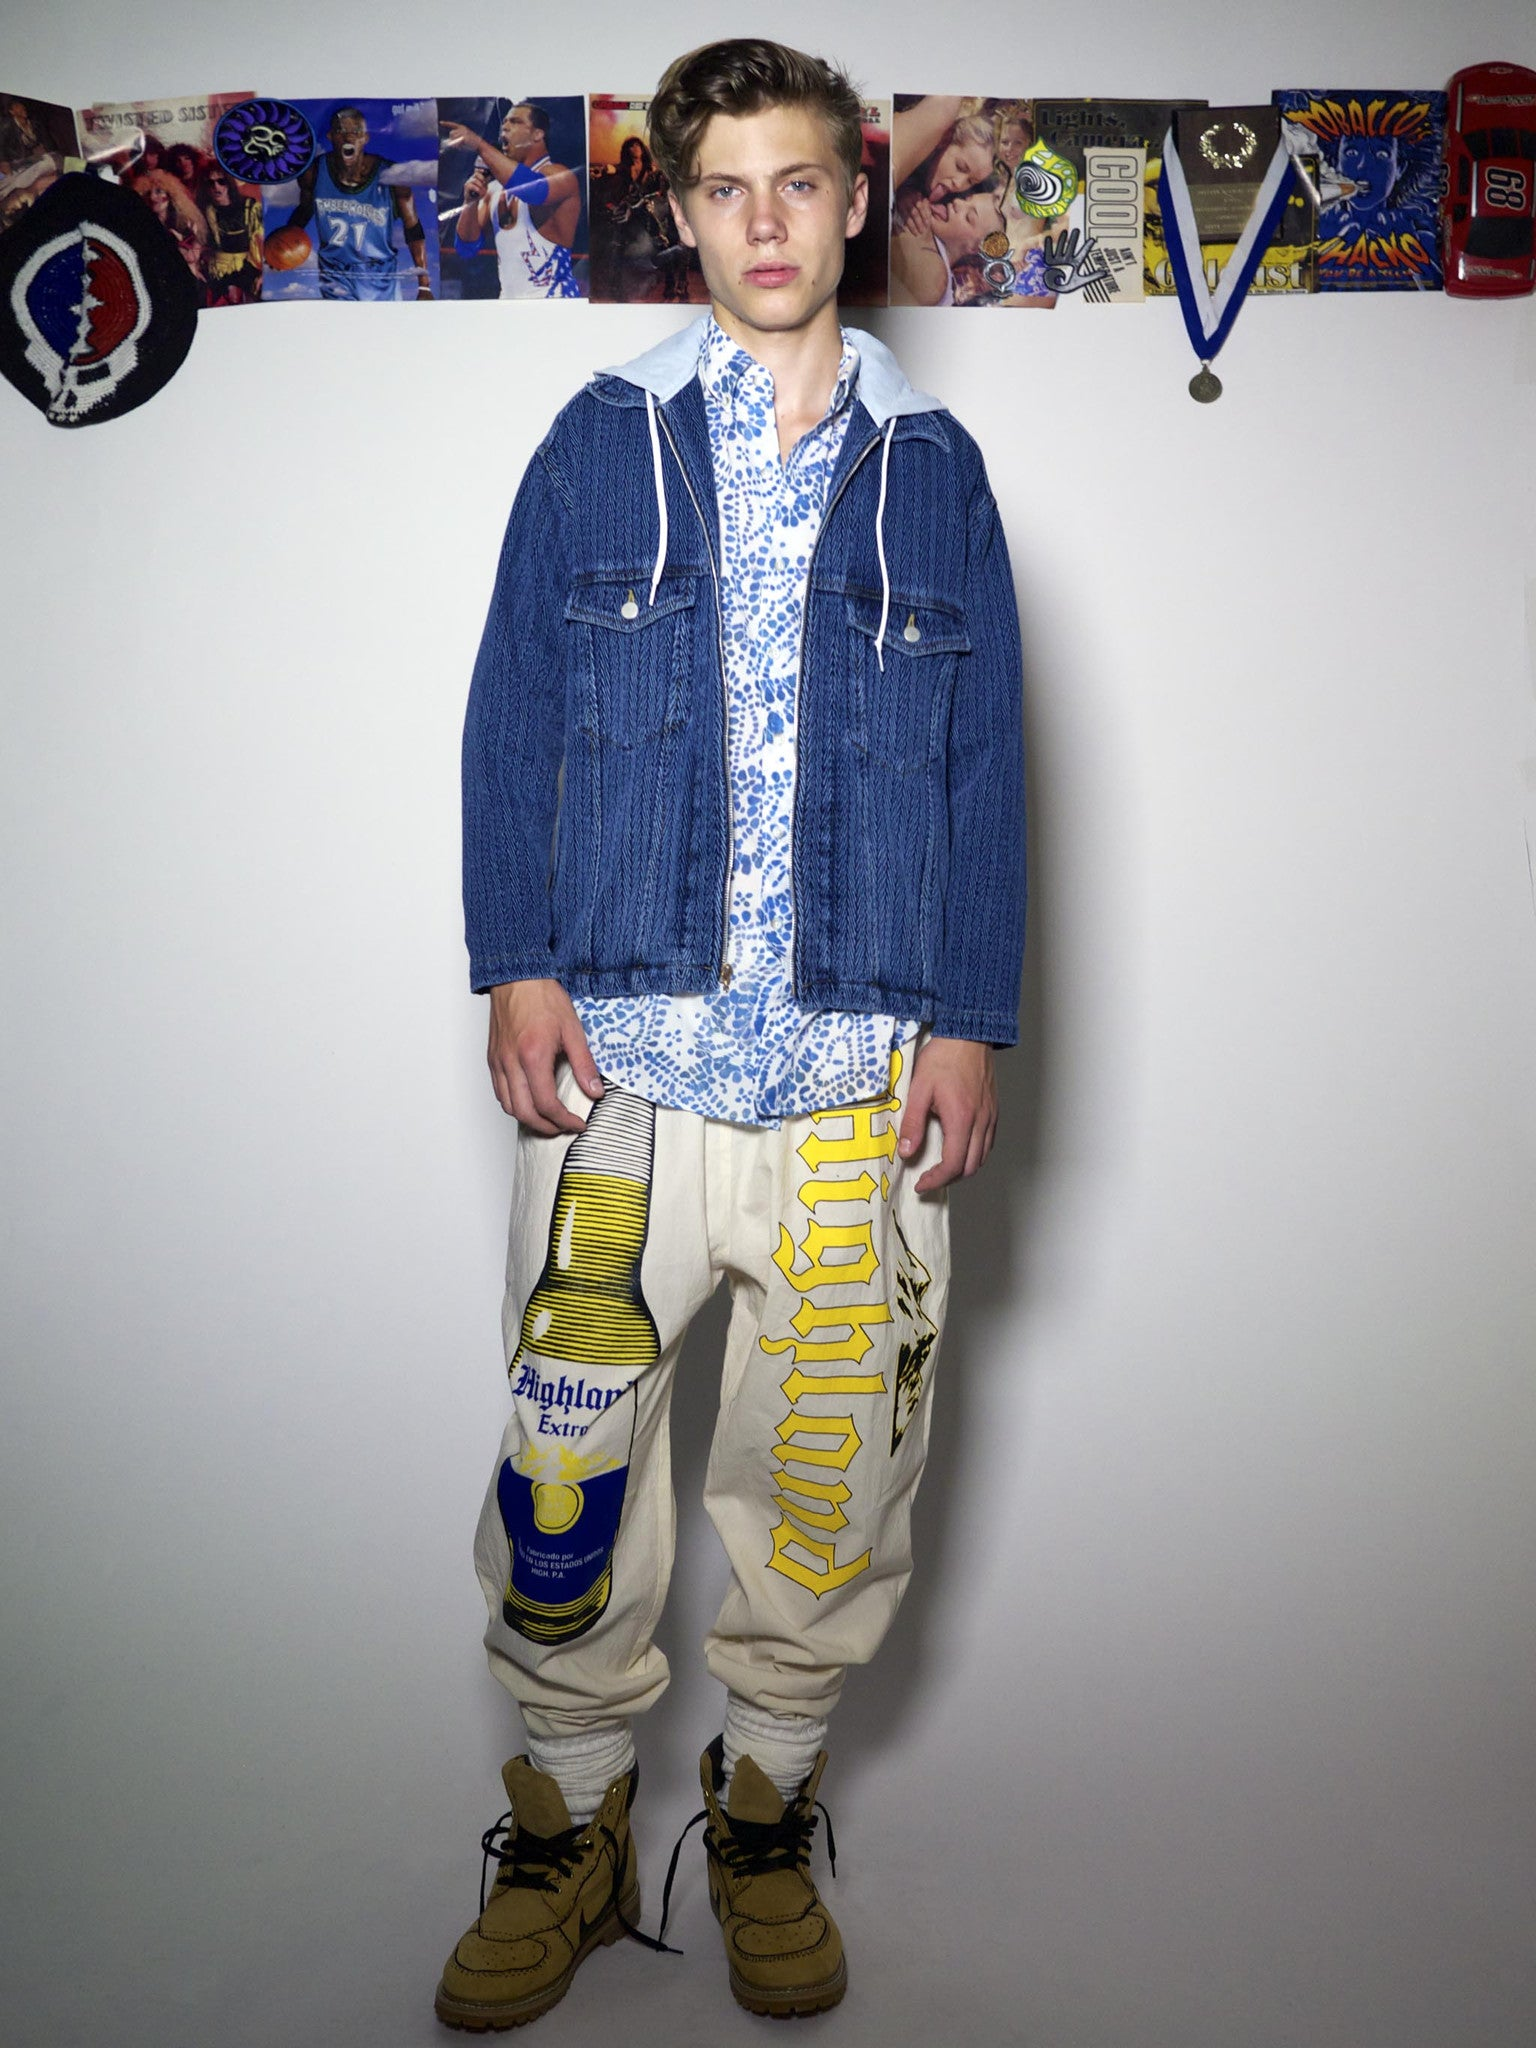 SS/14: Look 6